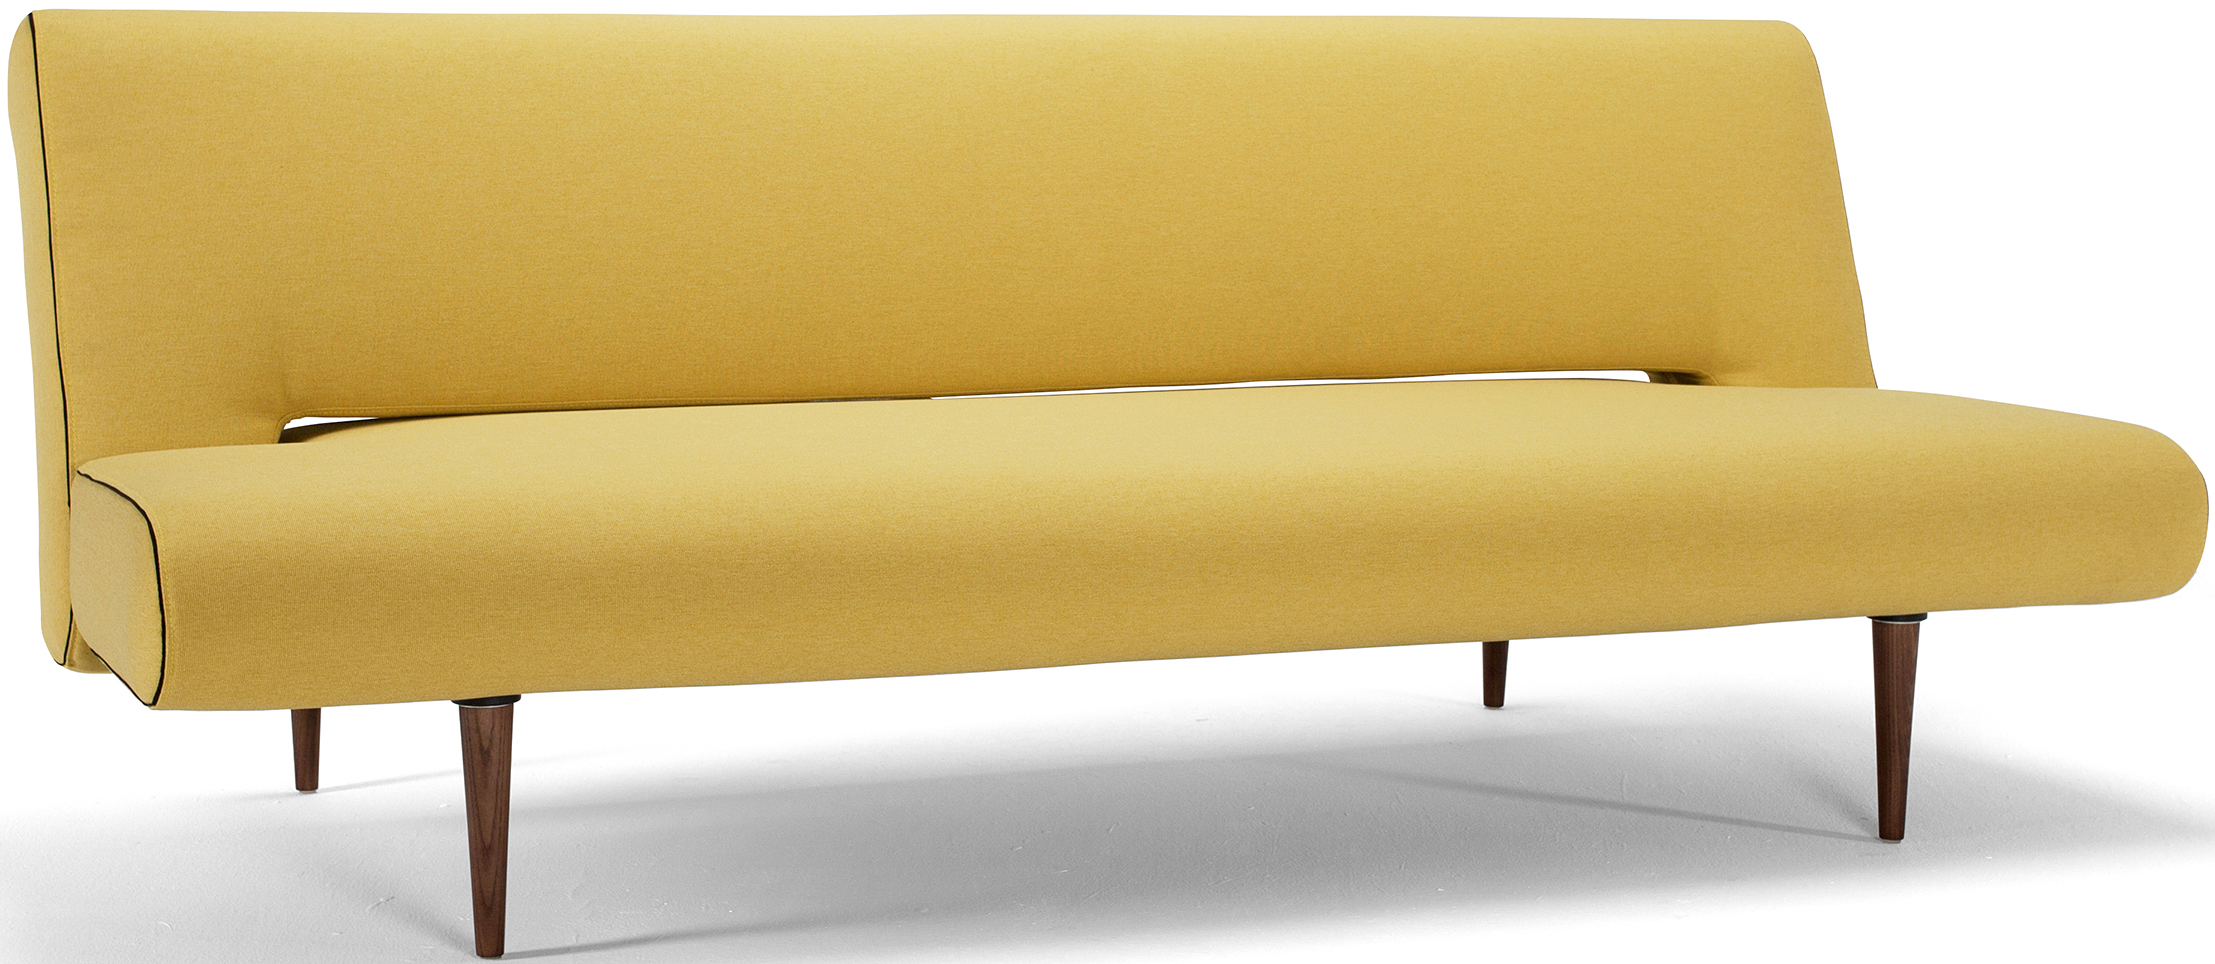 unfurl sofa bed soft mustard yellow